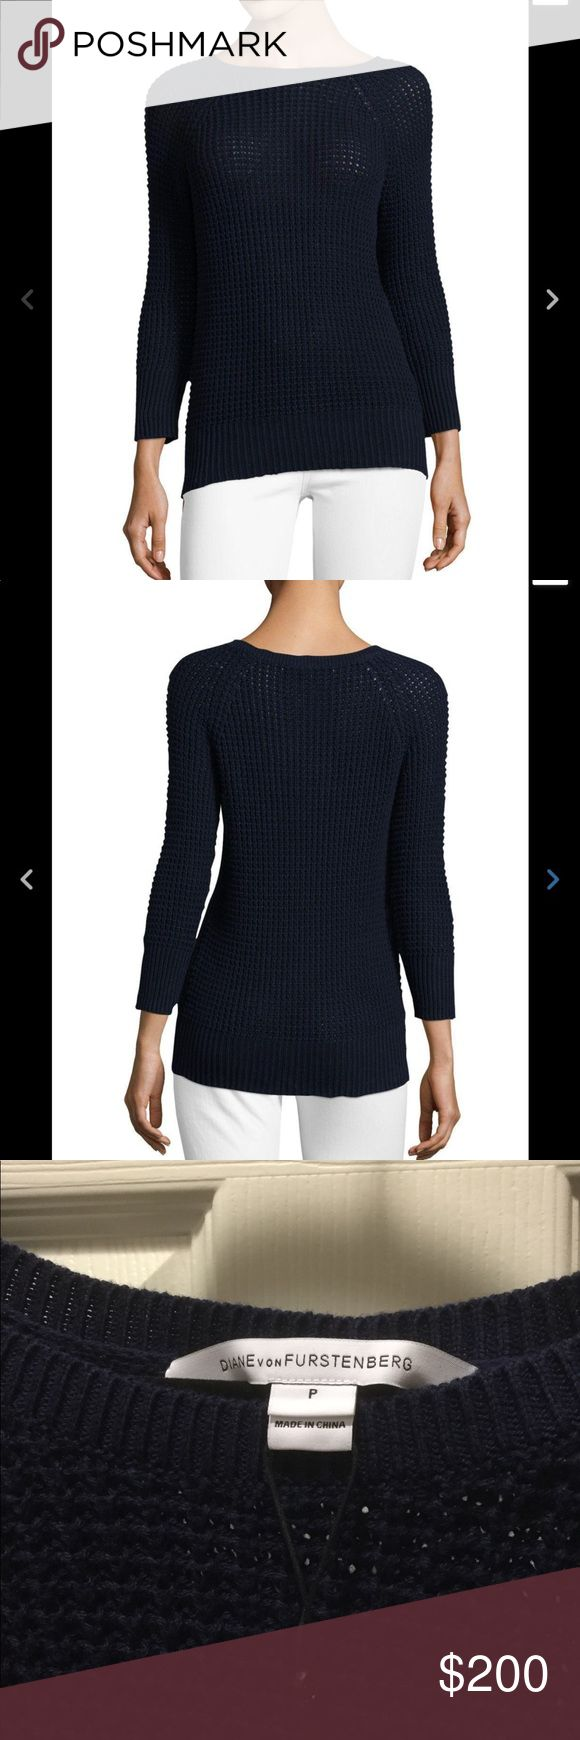 Diane von Furstenberg DVF Navy Waffle Pullover DVF Waffle Pullover Cotton Sweater. Fitted silhouette. Wide boat neckline. Raglan bracelet length sleeves. Ribbed neckline, cuffs and hemline. Medium waffle knit. Navy blue color.   Fabric Detail: 100% Cotton Diane Von Furstenberg Sweaters